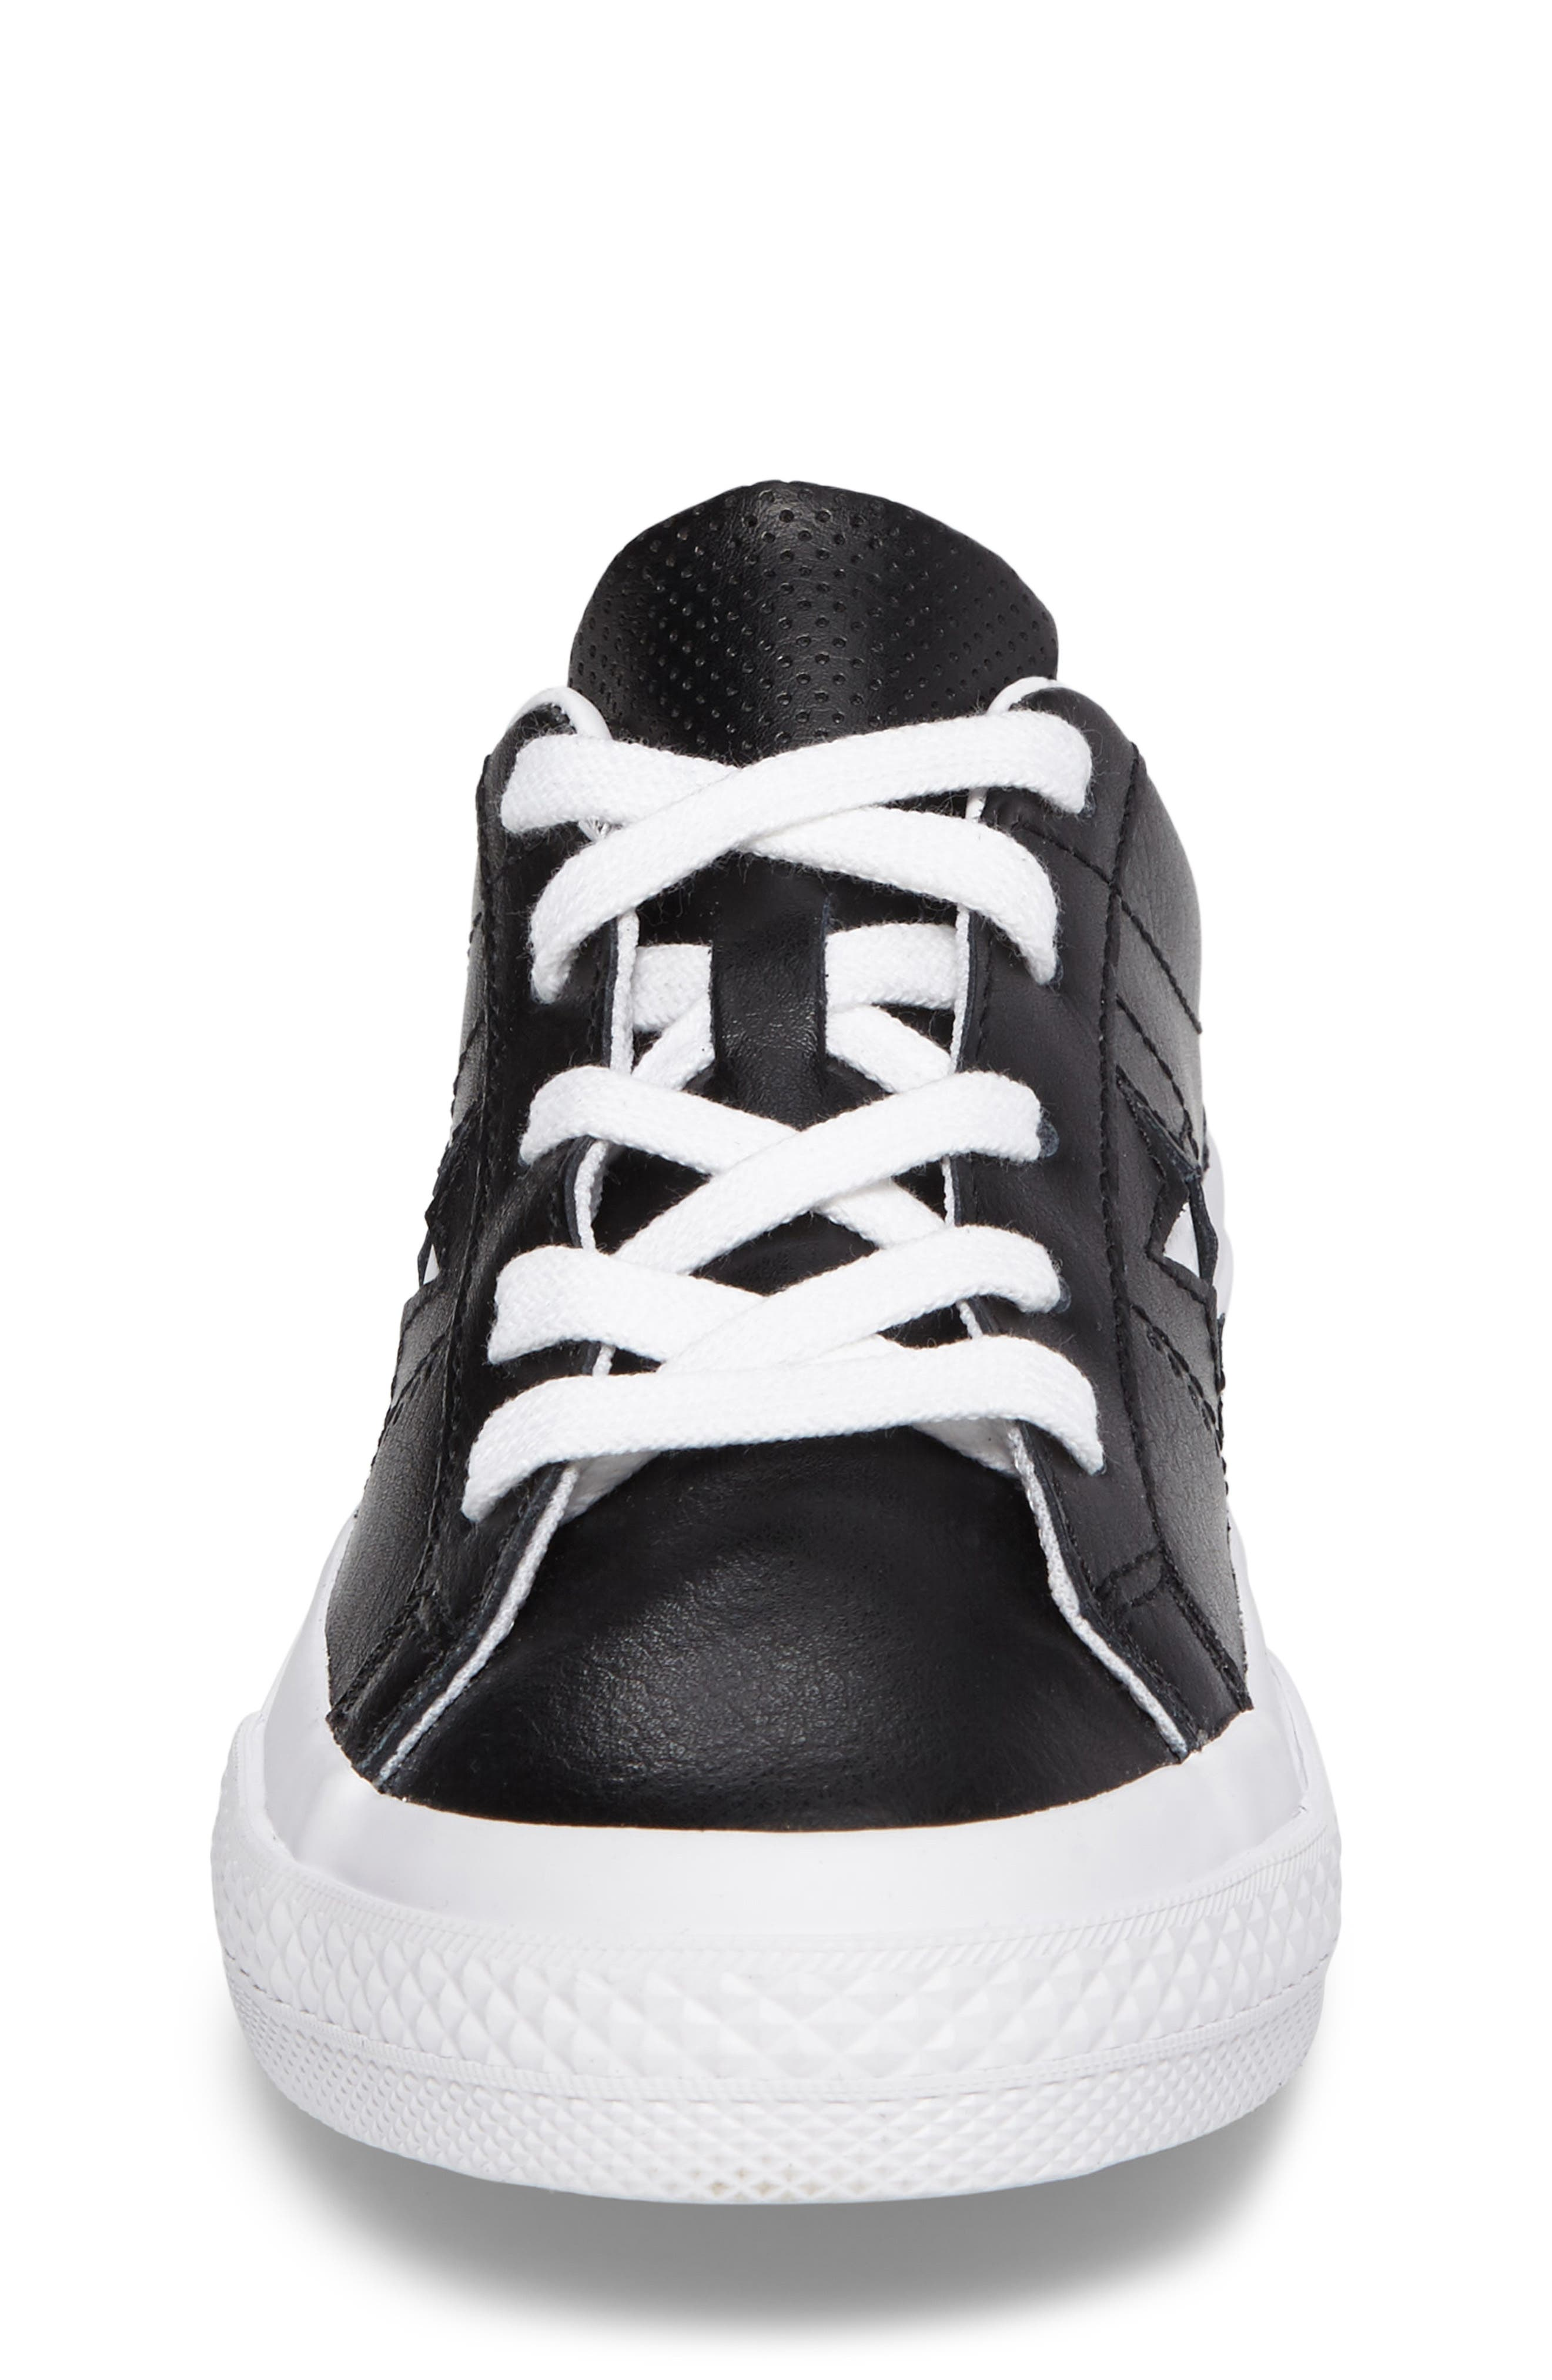 Chuck Taylor<sup>®</sup> All Star<sup>®</sup> One Star Sneaker,                             Alternate thumbnail 4, color,                             Black Leather